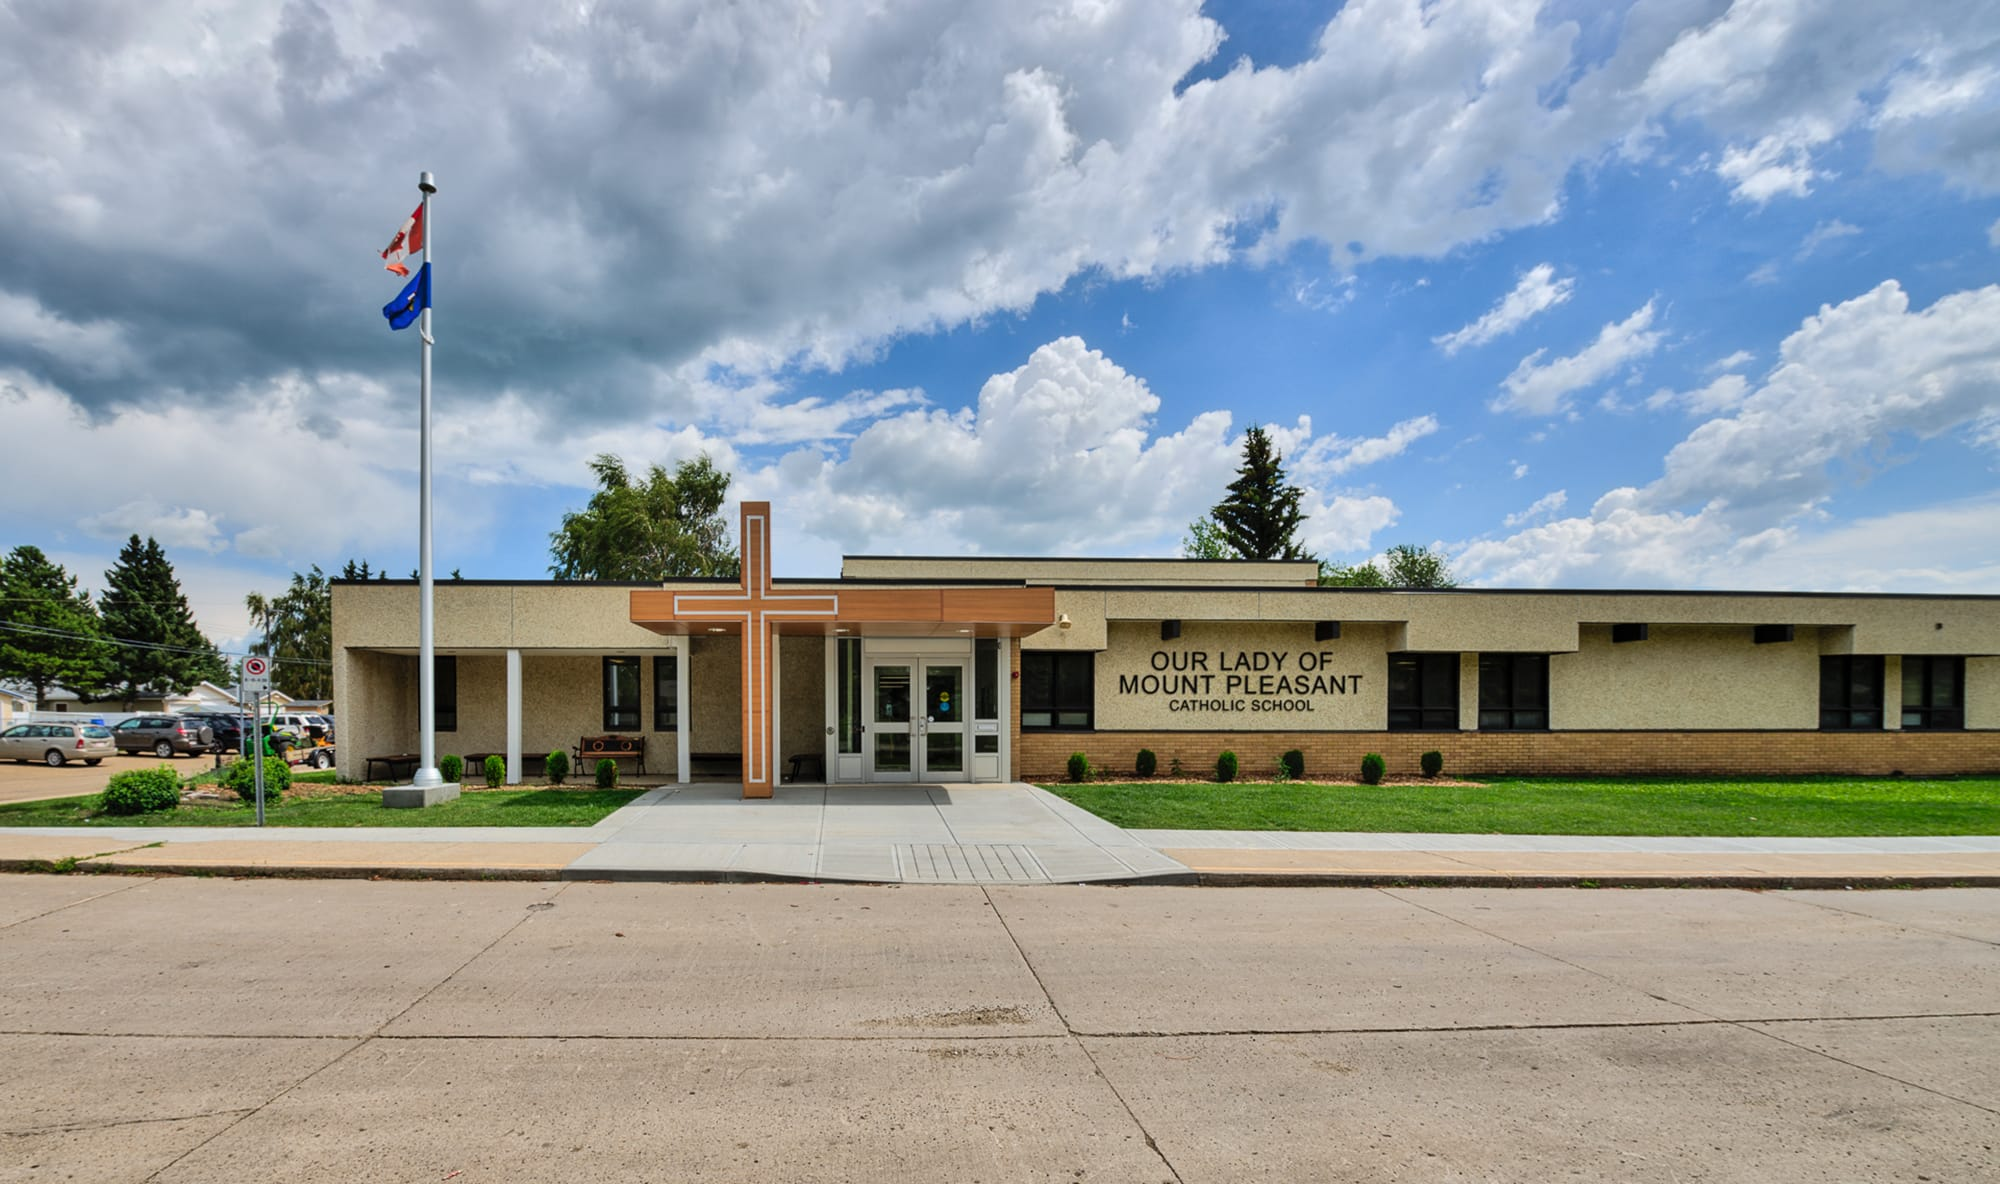 Our Lady of Mount Pleasant School exterior